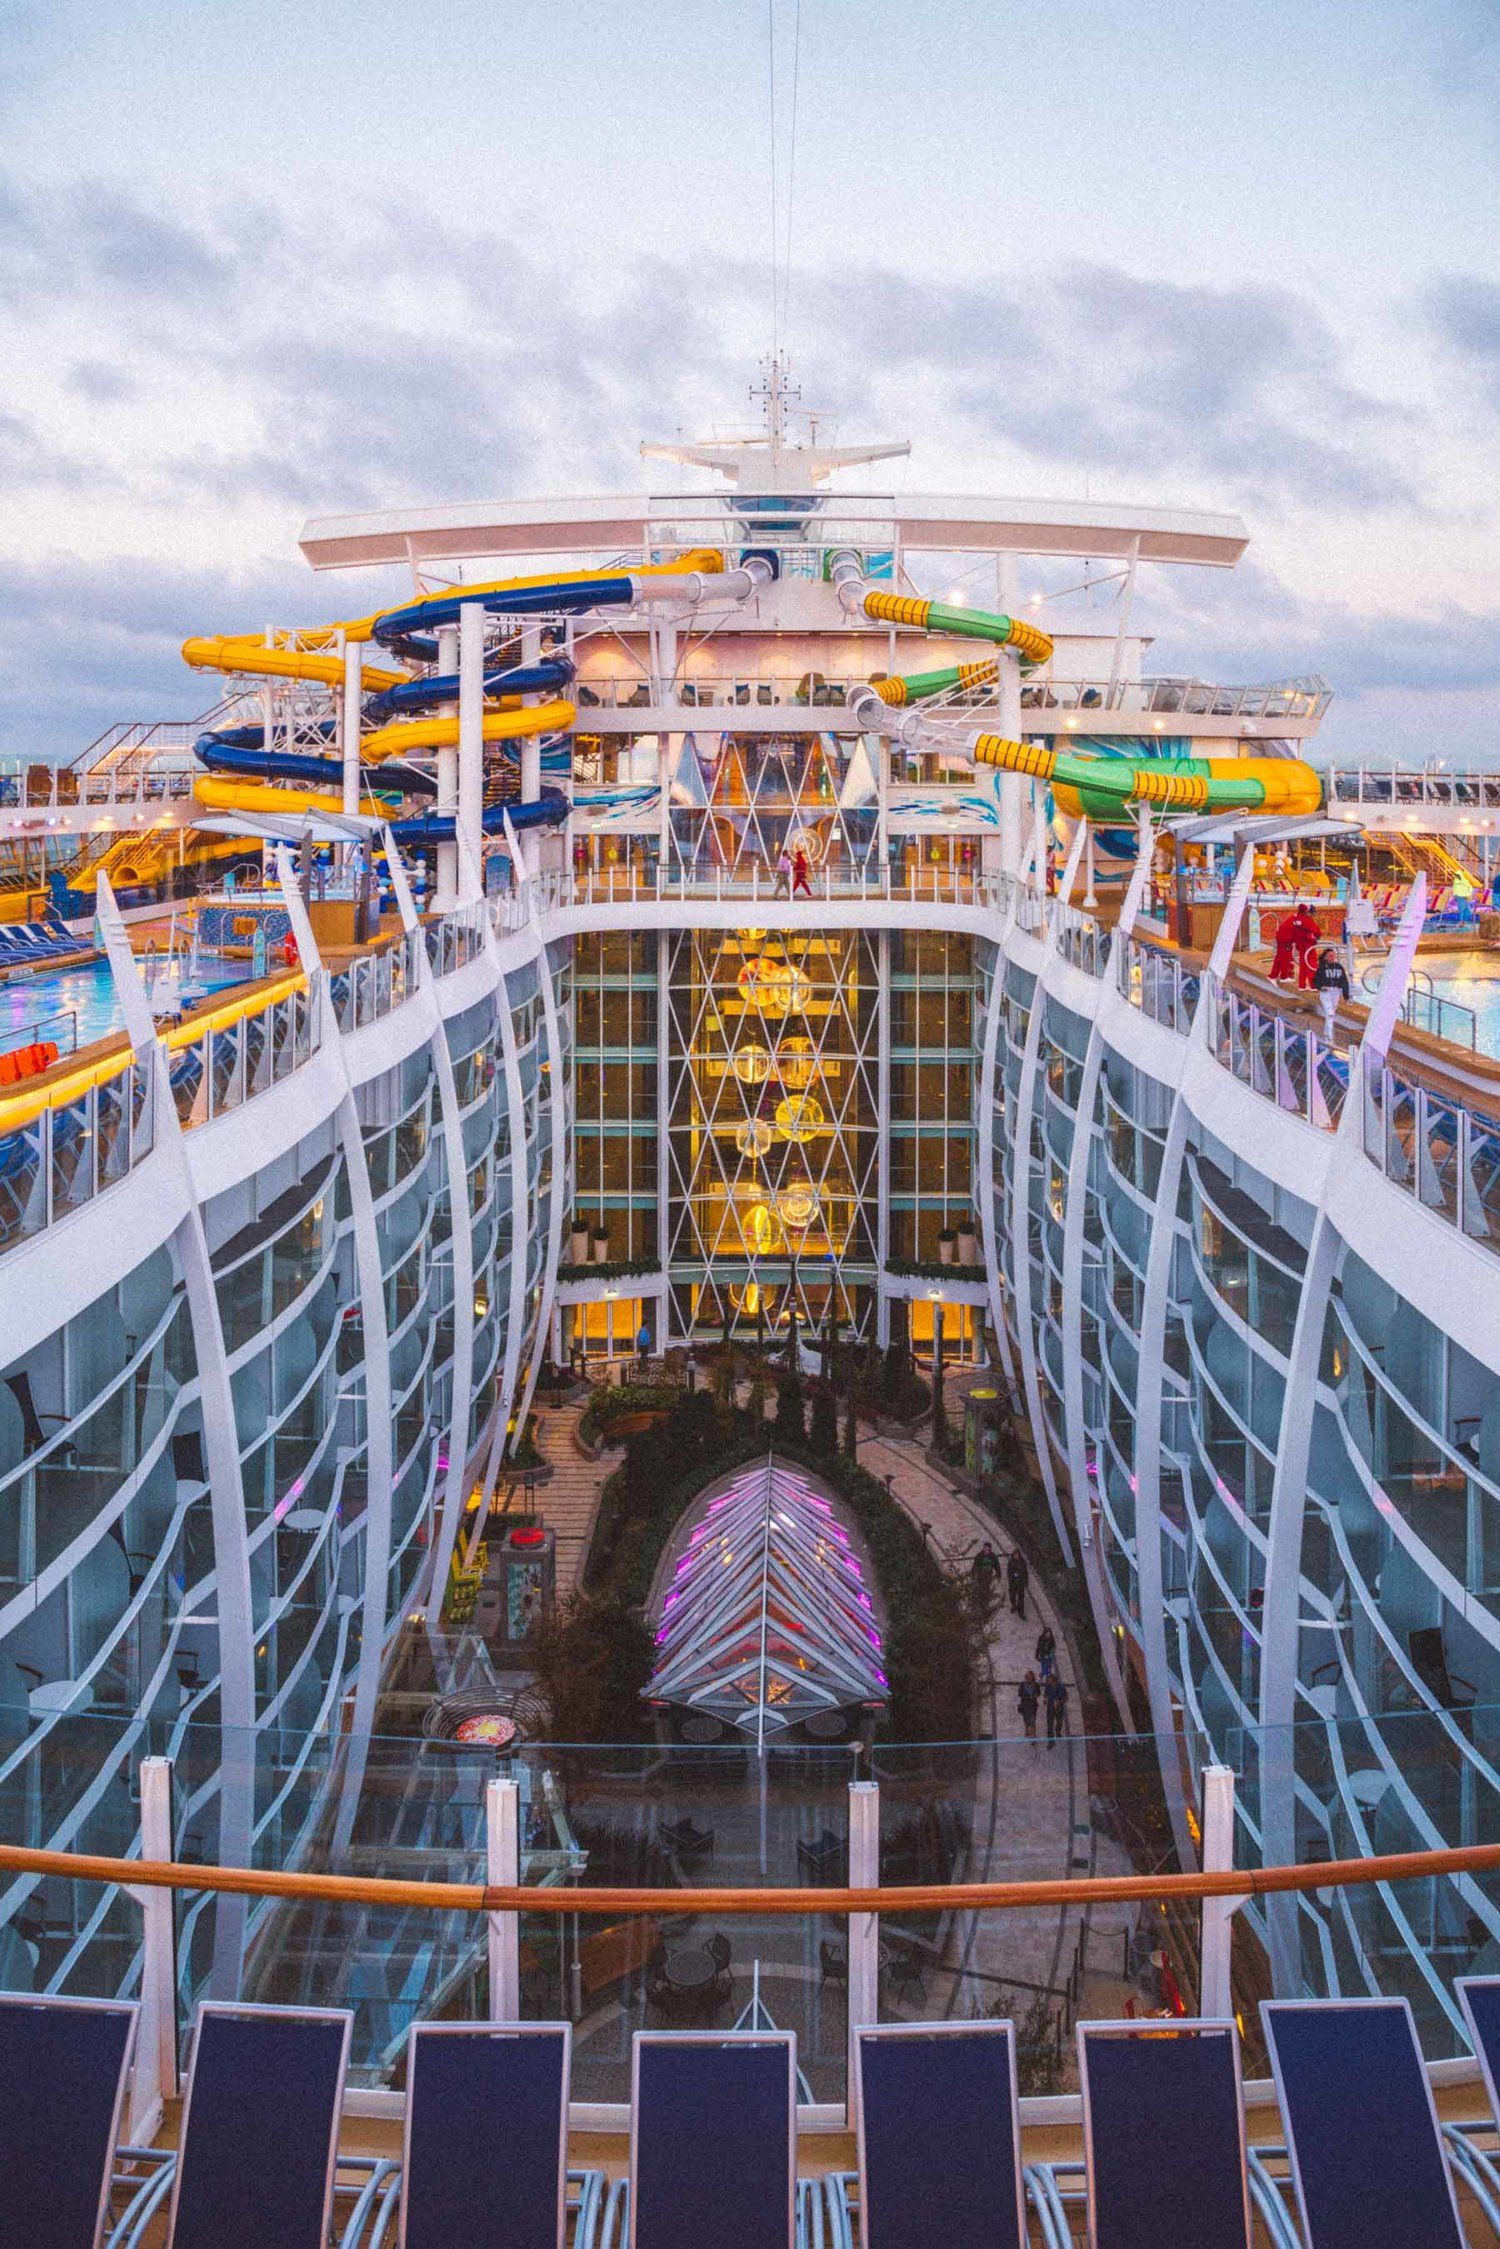 Maiden Voyage with Symphony of the Seas of Royal Caribbean